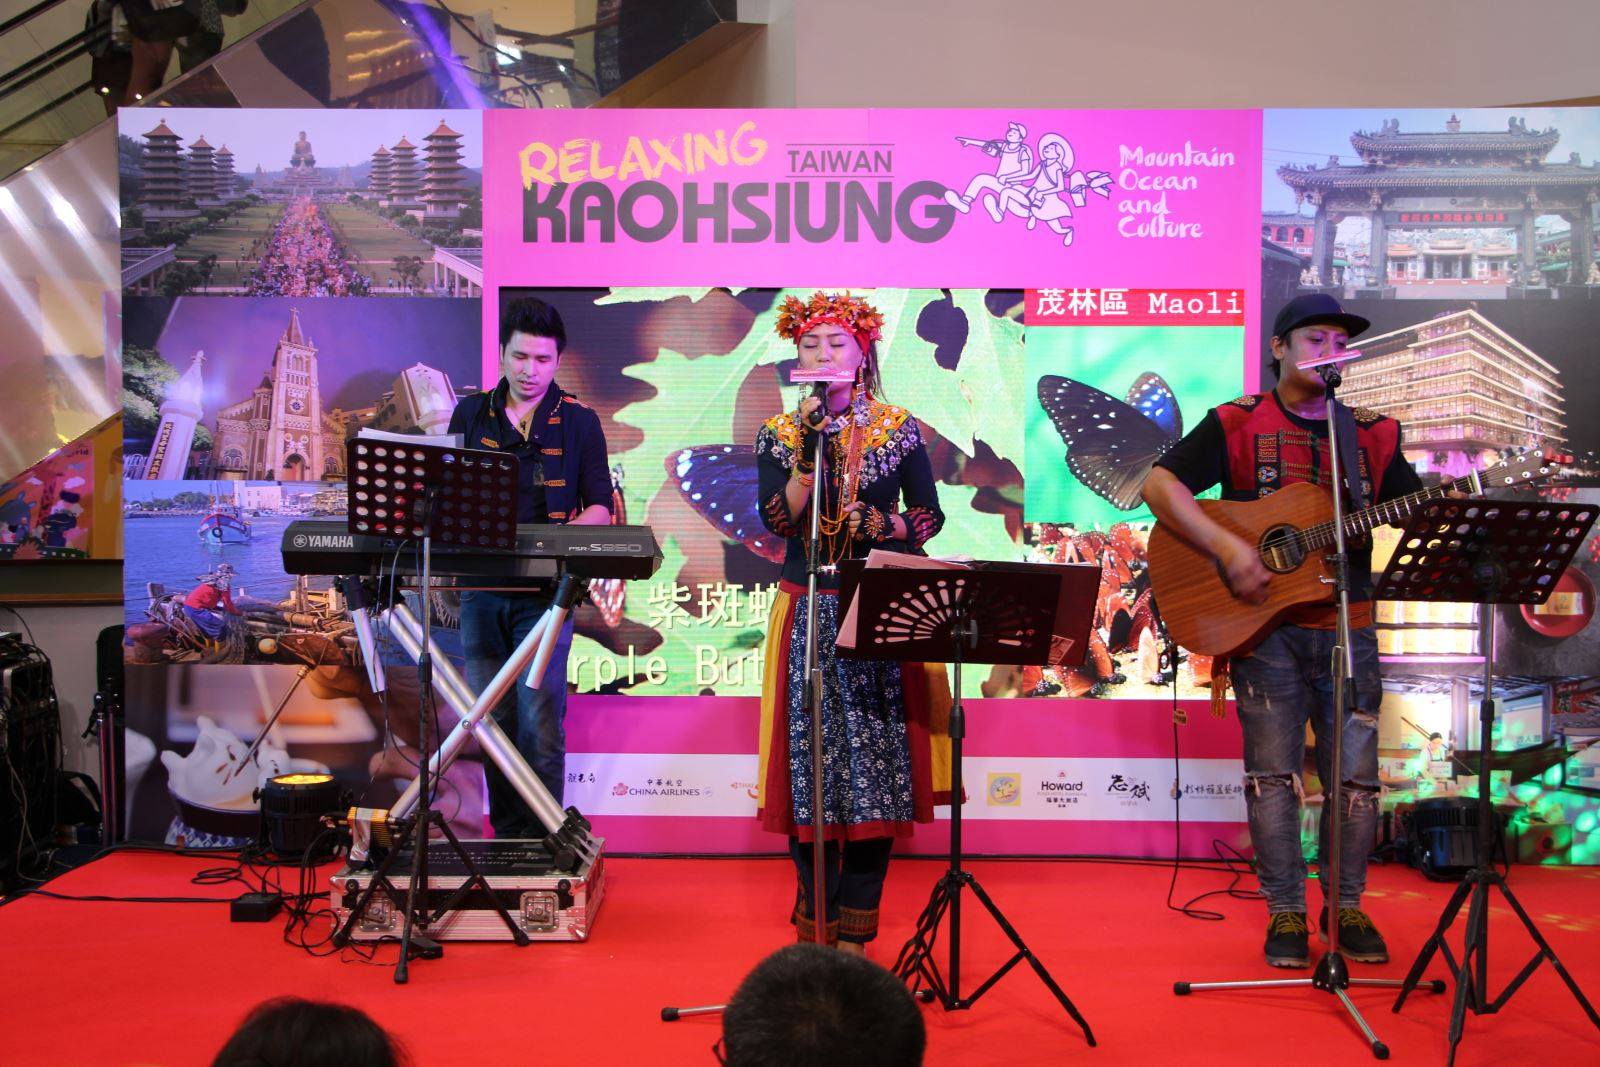 Kaohsiung impresses Thai visitors with high-quality tourism services